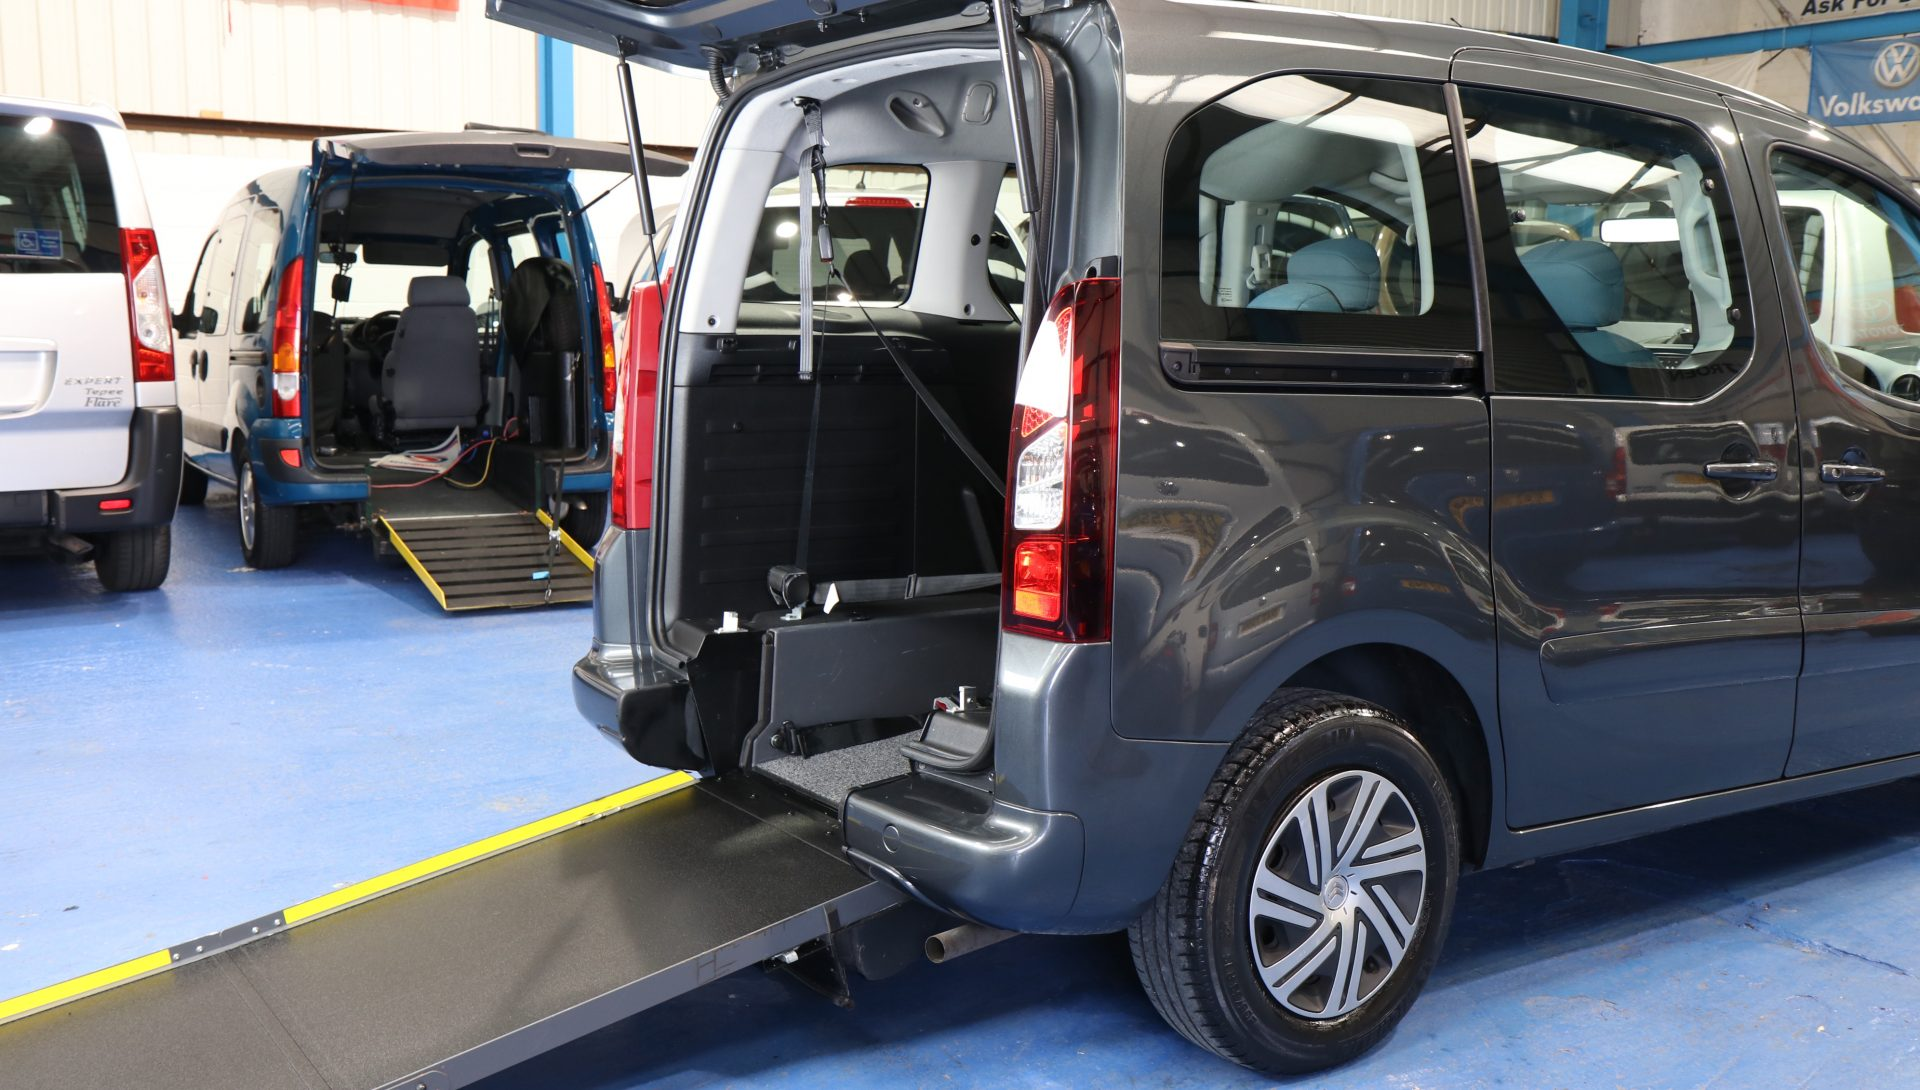 Berlingo Auto wheelchair vehicle wf63 kvz